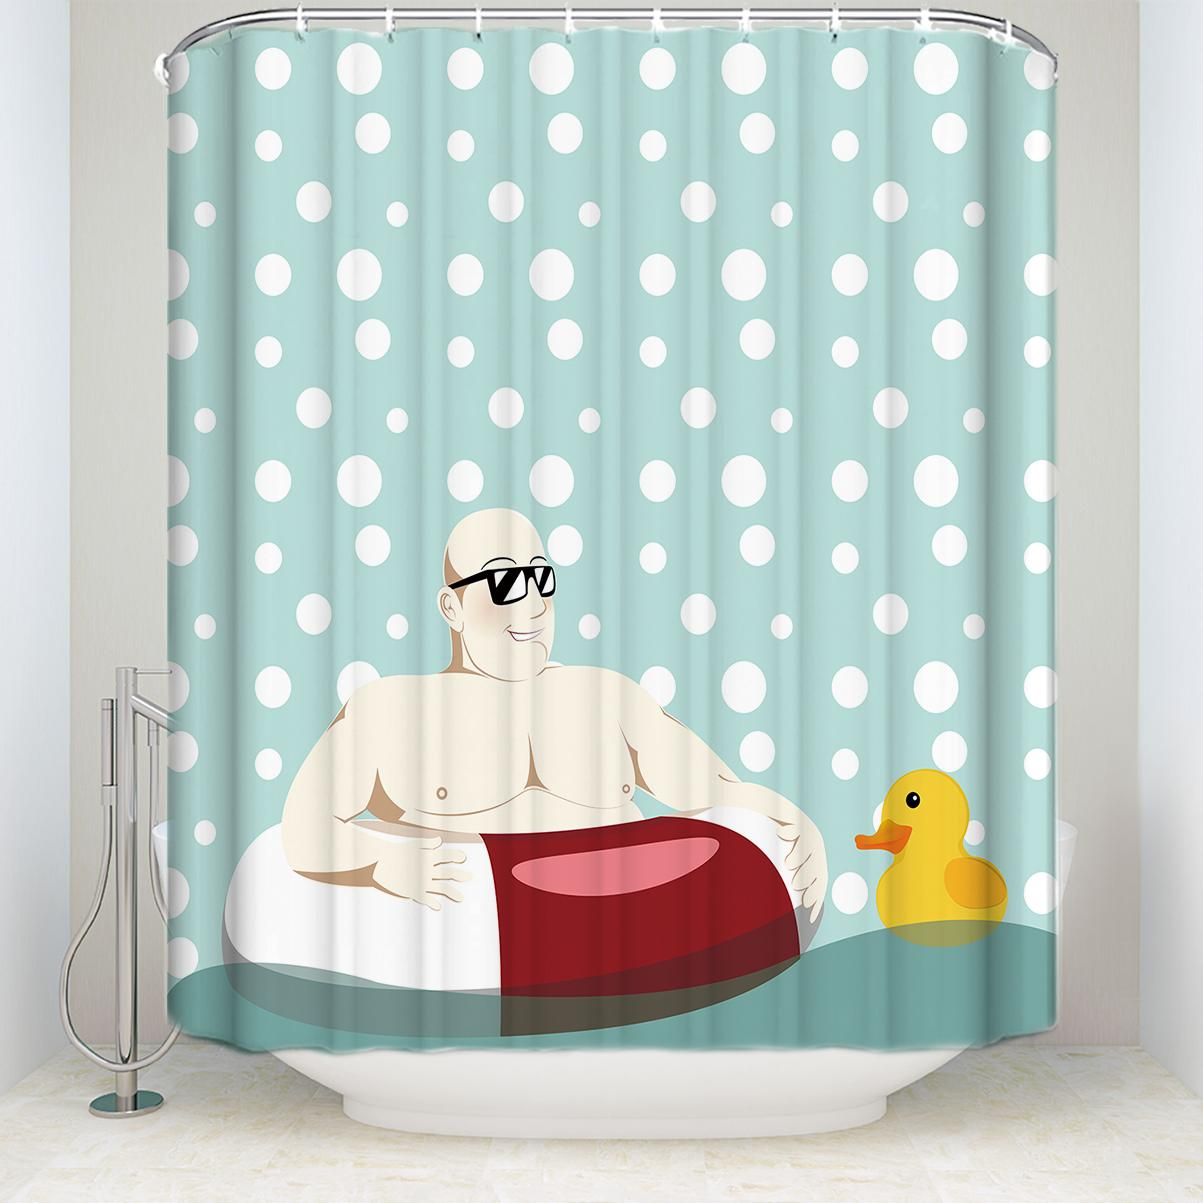 2019 Creative Design Swimming Man Yellow Duck Shower Curtain Waterproof Polyester Fabric Bathroom Decor Printed From Icelly 3027